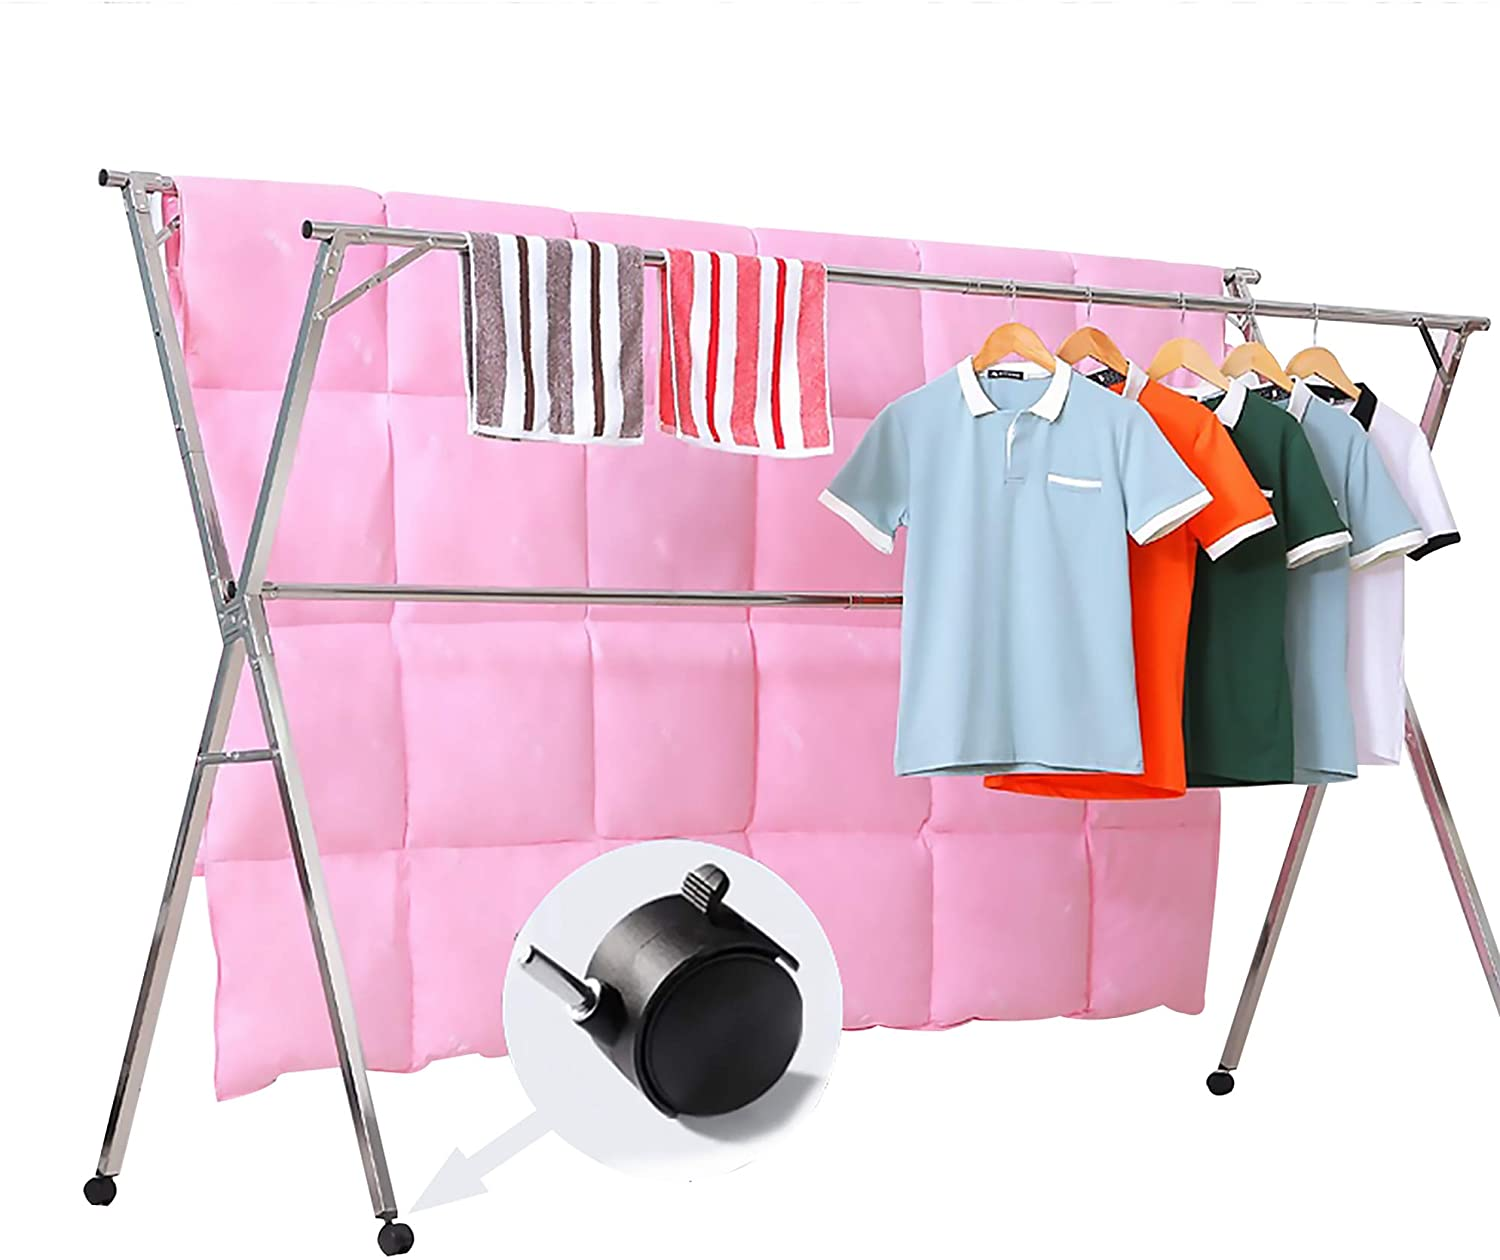 Reliancer Free Installed Clothes Drying Rack Stainless Steel Foldable Rack Hanger Space Saving Retractable 43 3 59 Inch Clothes Rack Adjustable Clothes Hanger Rolling Rack With 4 Casters 10 Hooks Kitchen Dining